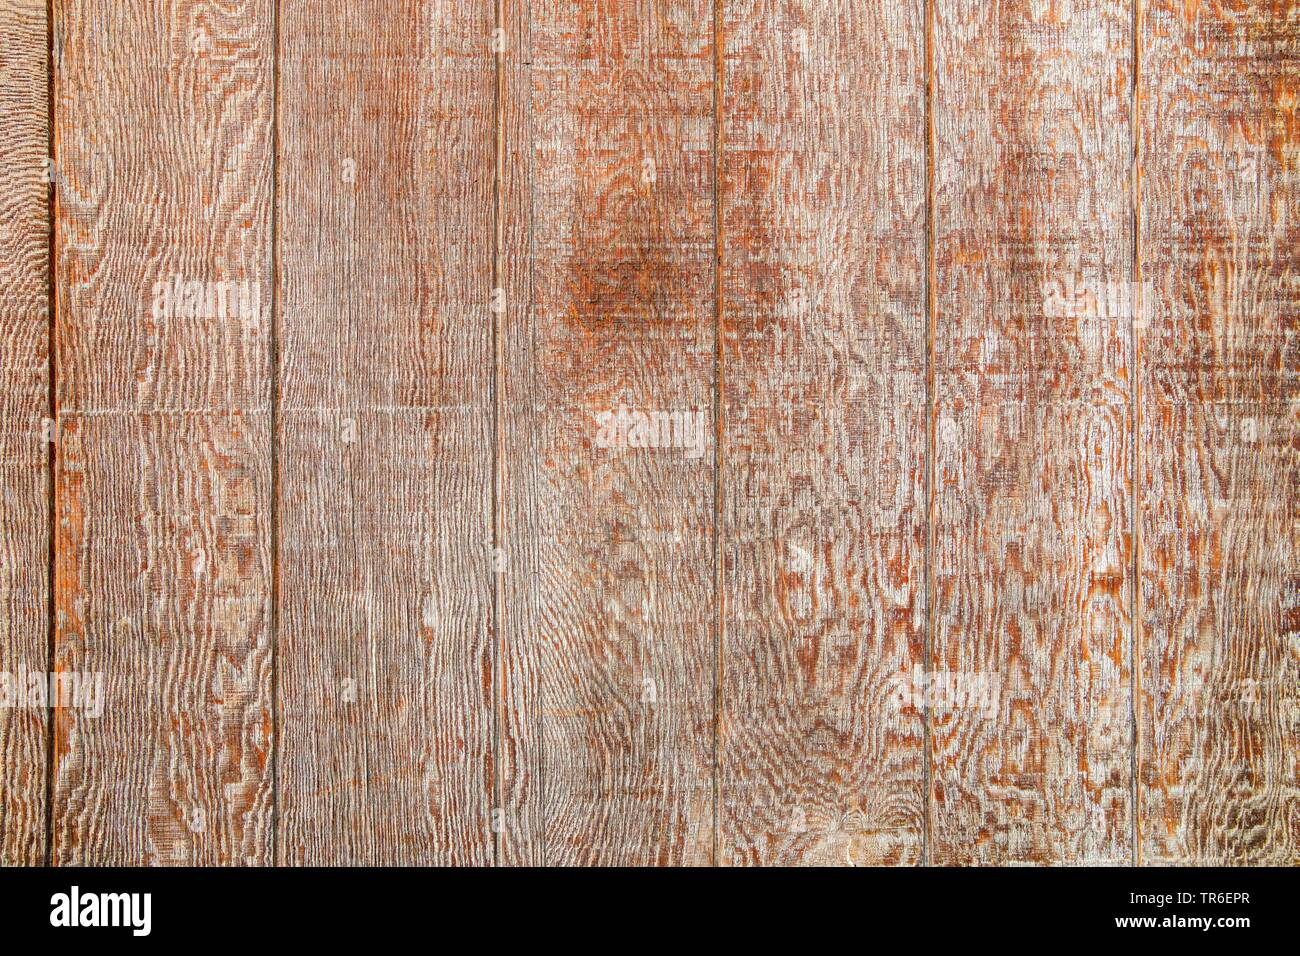 Massivholzhaus Wand Braunes Holzhaus Stock Photos Braunes Holzhaus Stock Images Alamy